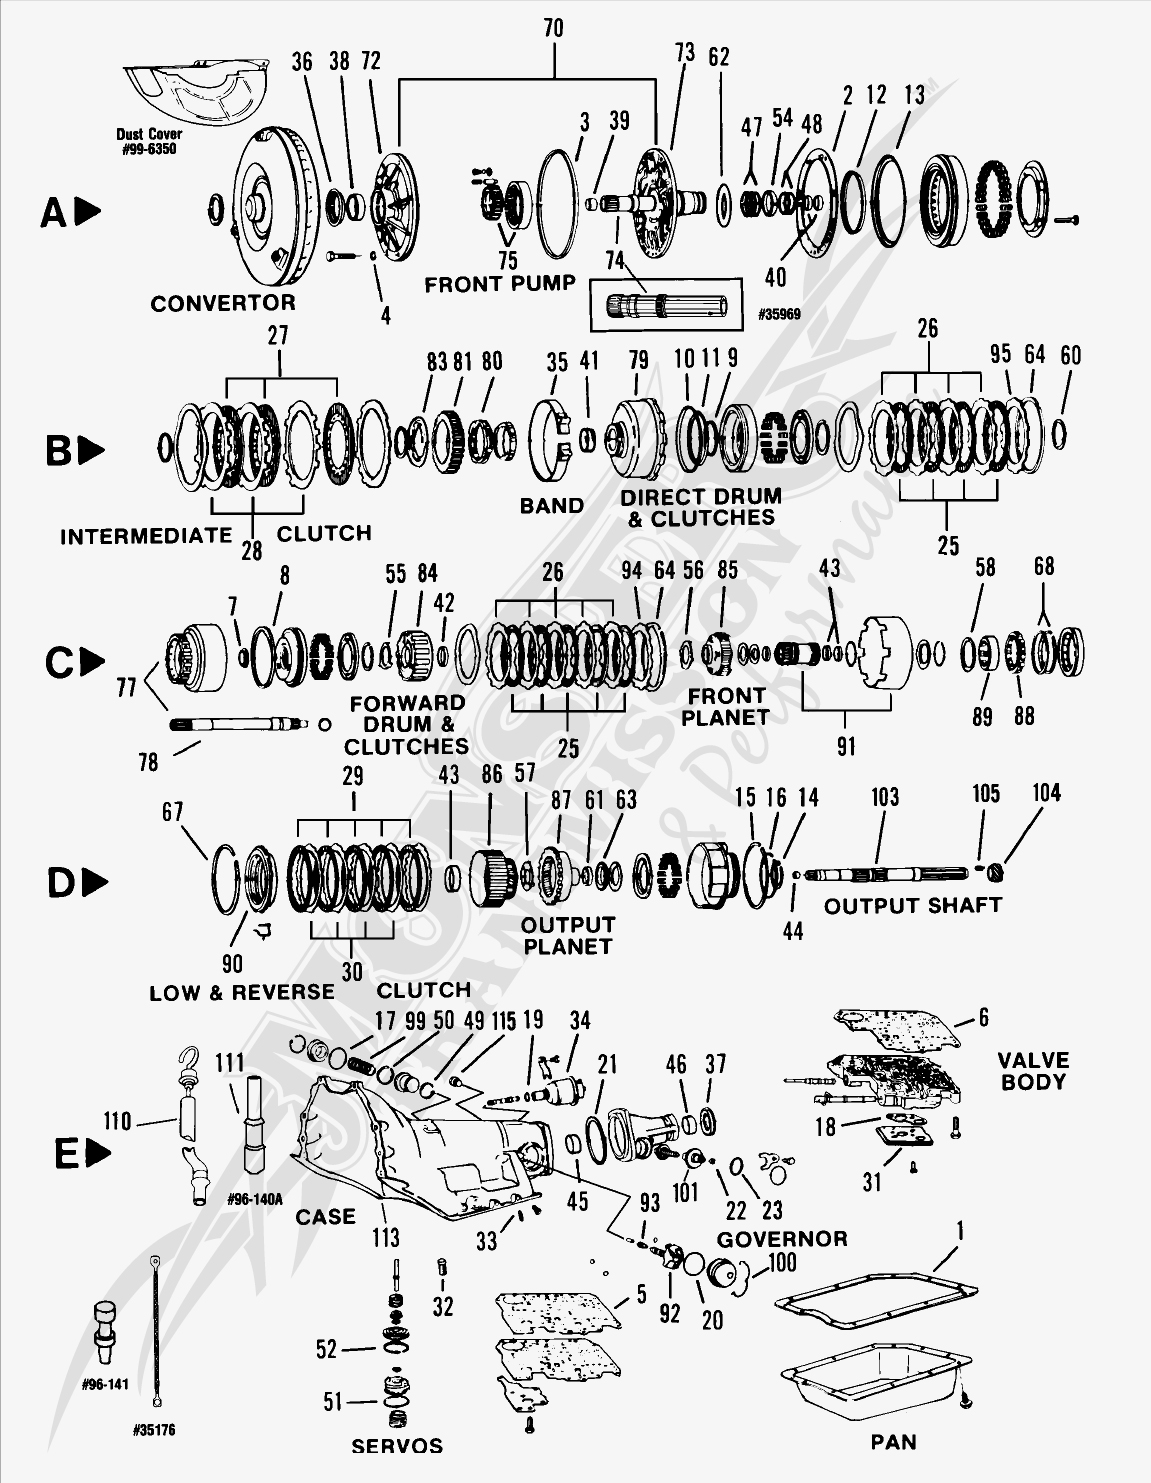 Turbo 350 Transmission Schematics - Wiring Data Schema • | Turbo 350 Wiring Diagram |  | www.exoticterra.co